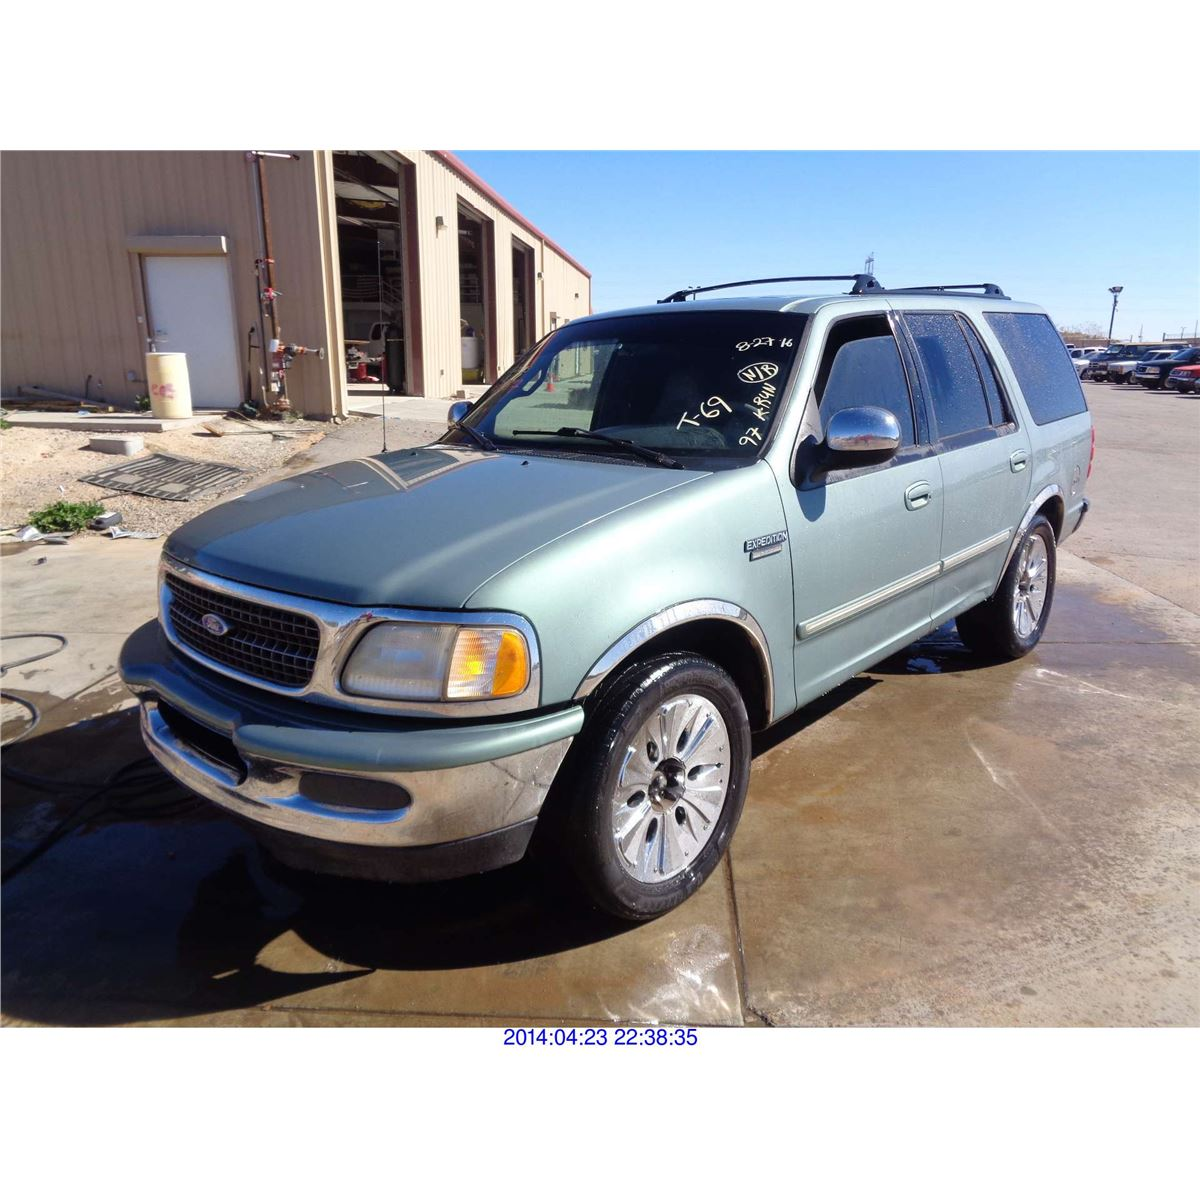 Ford Expediton: FORD EXPEDITION // SALVAGE TITLE